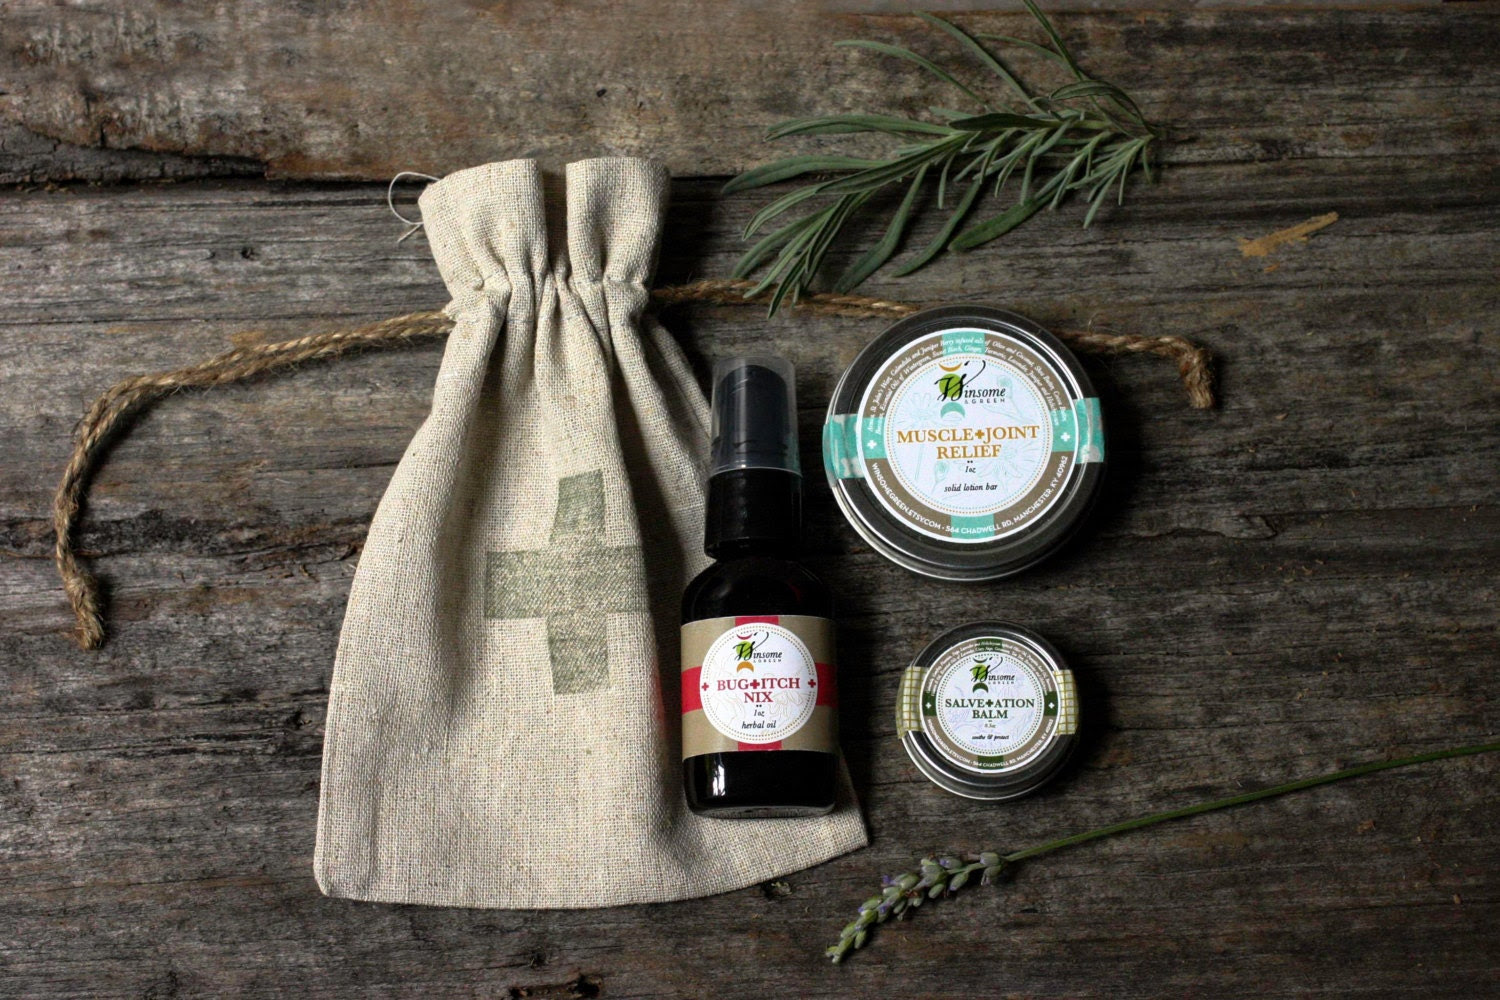 Outdoors Survival Kit / GIft for Him / Hunger Games / Under 25 / cyber monday / theteam, cabin, camping, rustic, swiss cross, skincare - WinsomeGreen